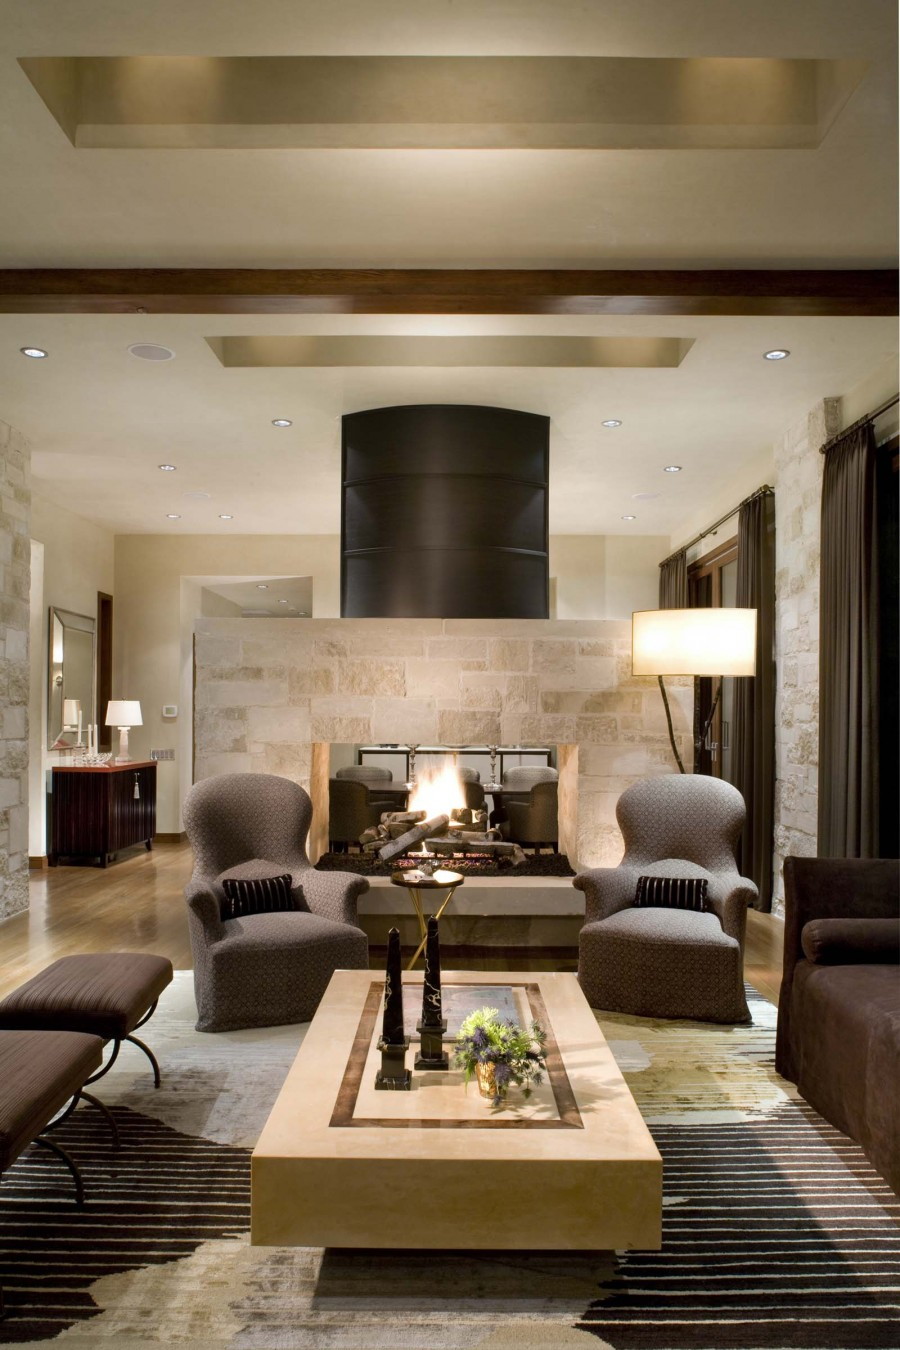 16 fabulous earth tones living room designs decoholic for Living room images ideas